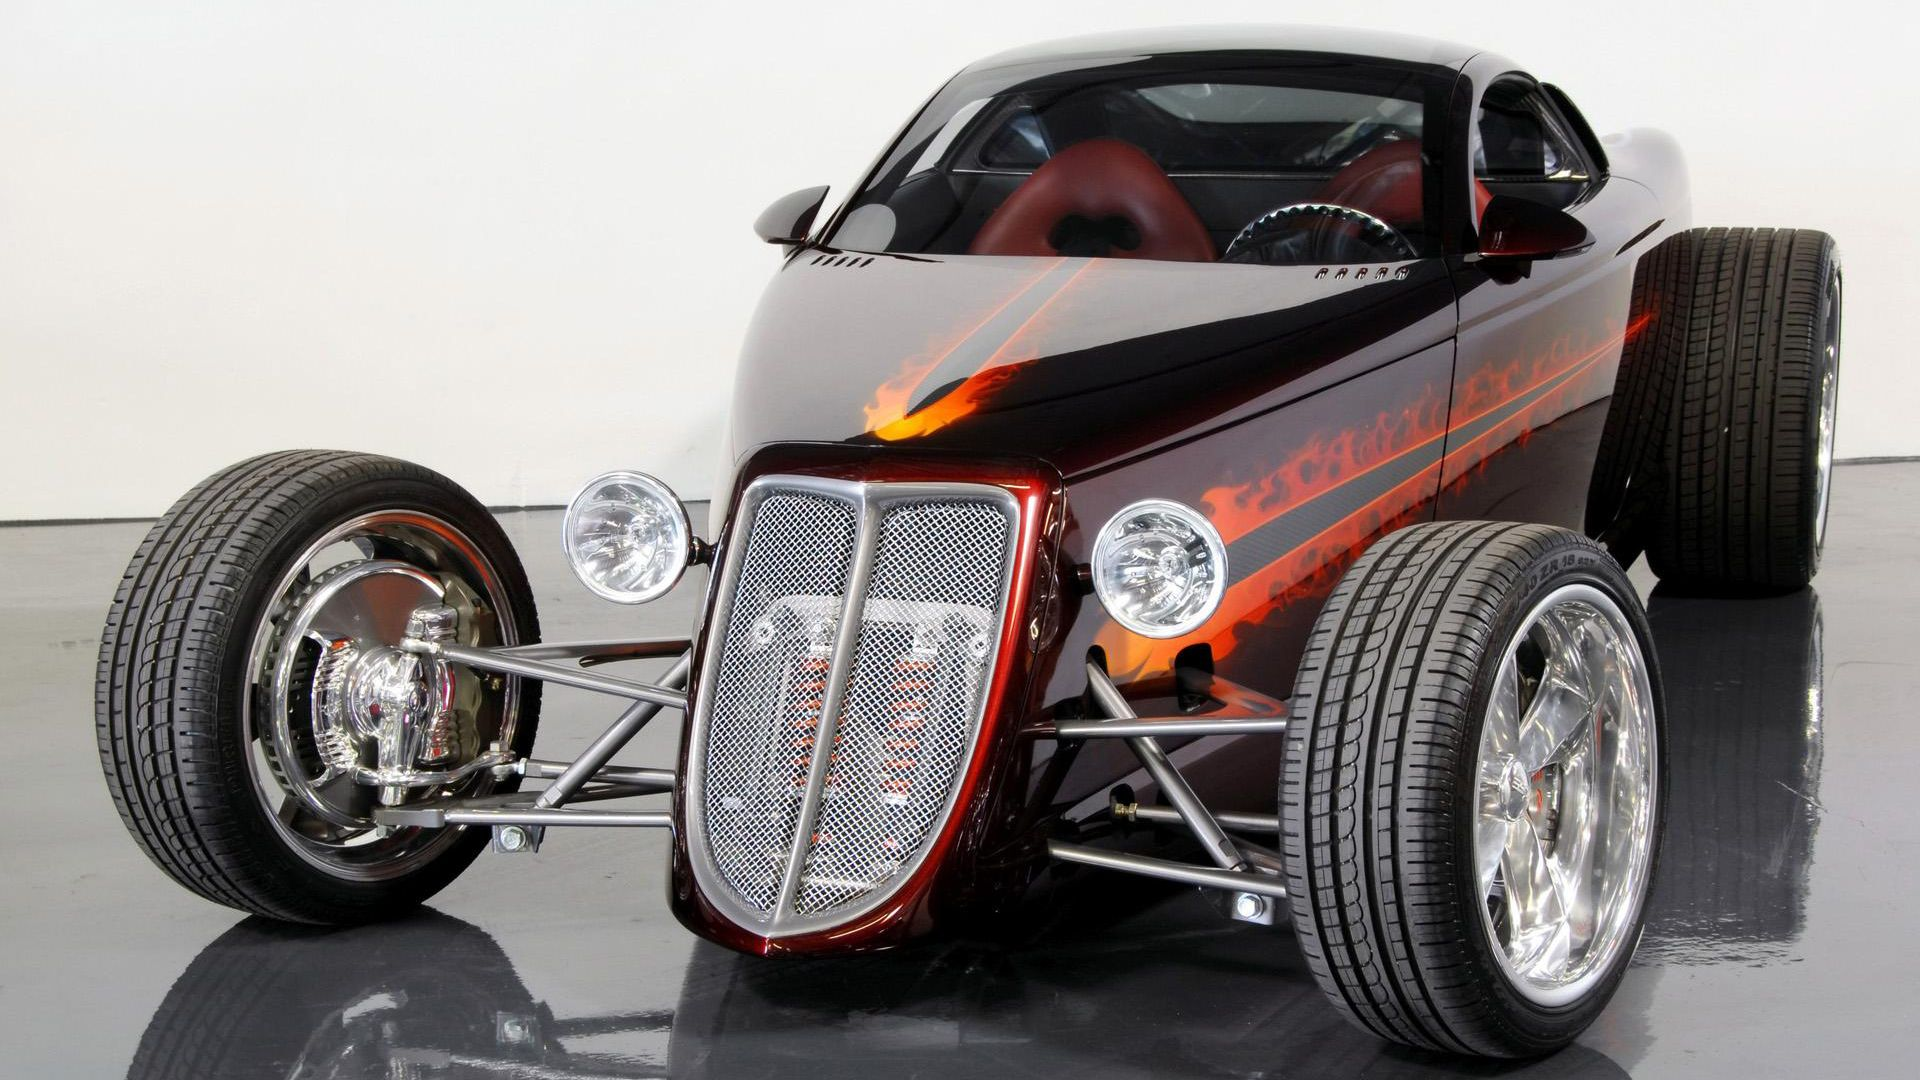 3 Plymouth Prowler HD Wallpapers | Backgrounds - Wallpaper ...